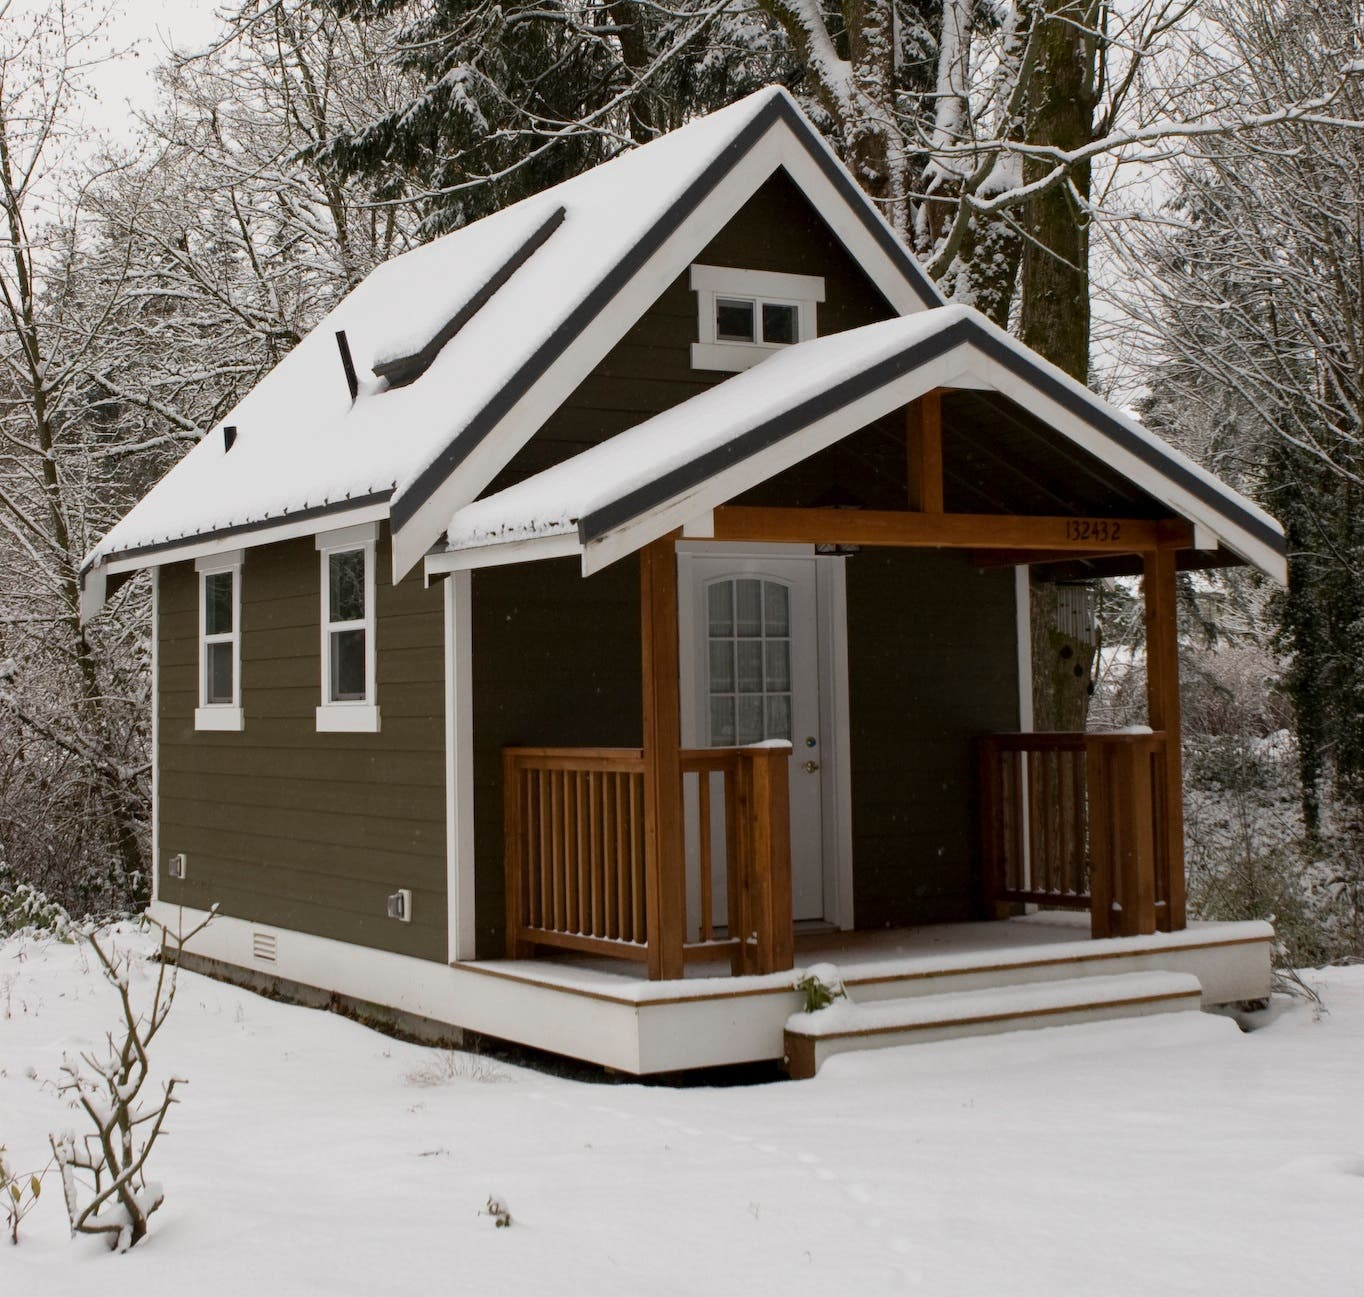 Tiny house articles Small house design